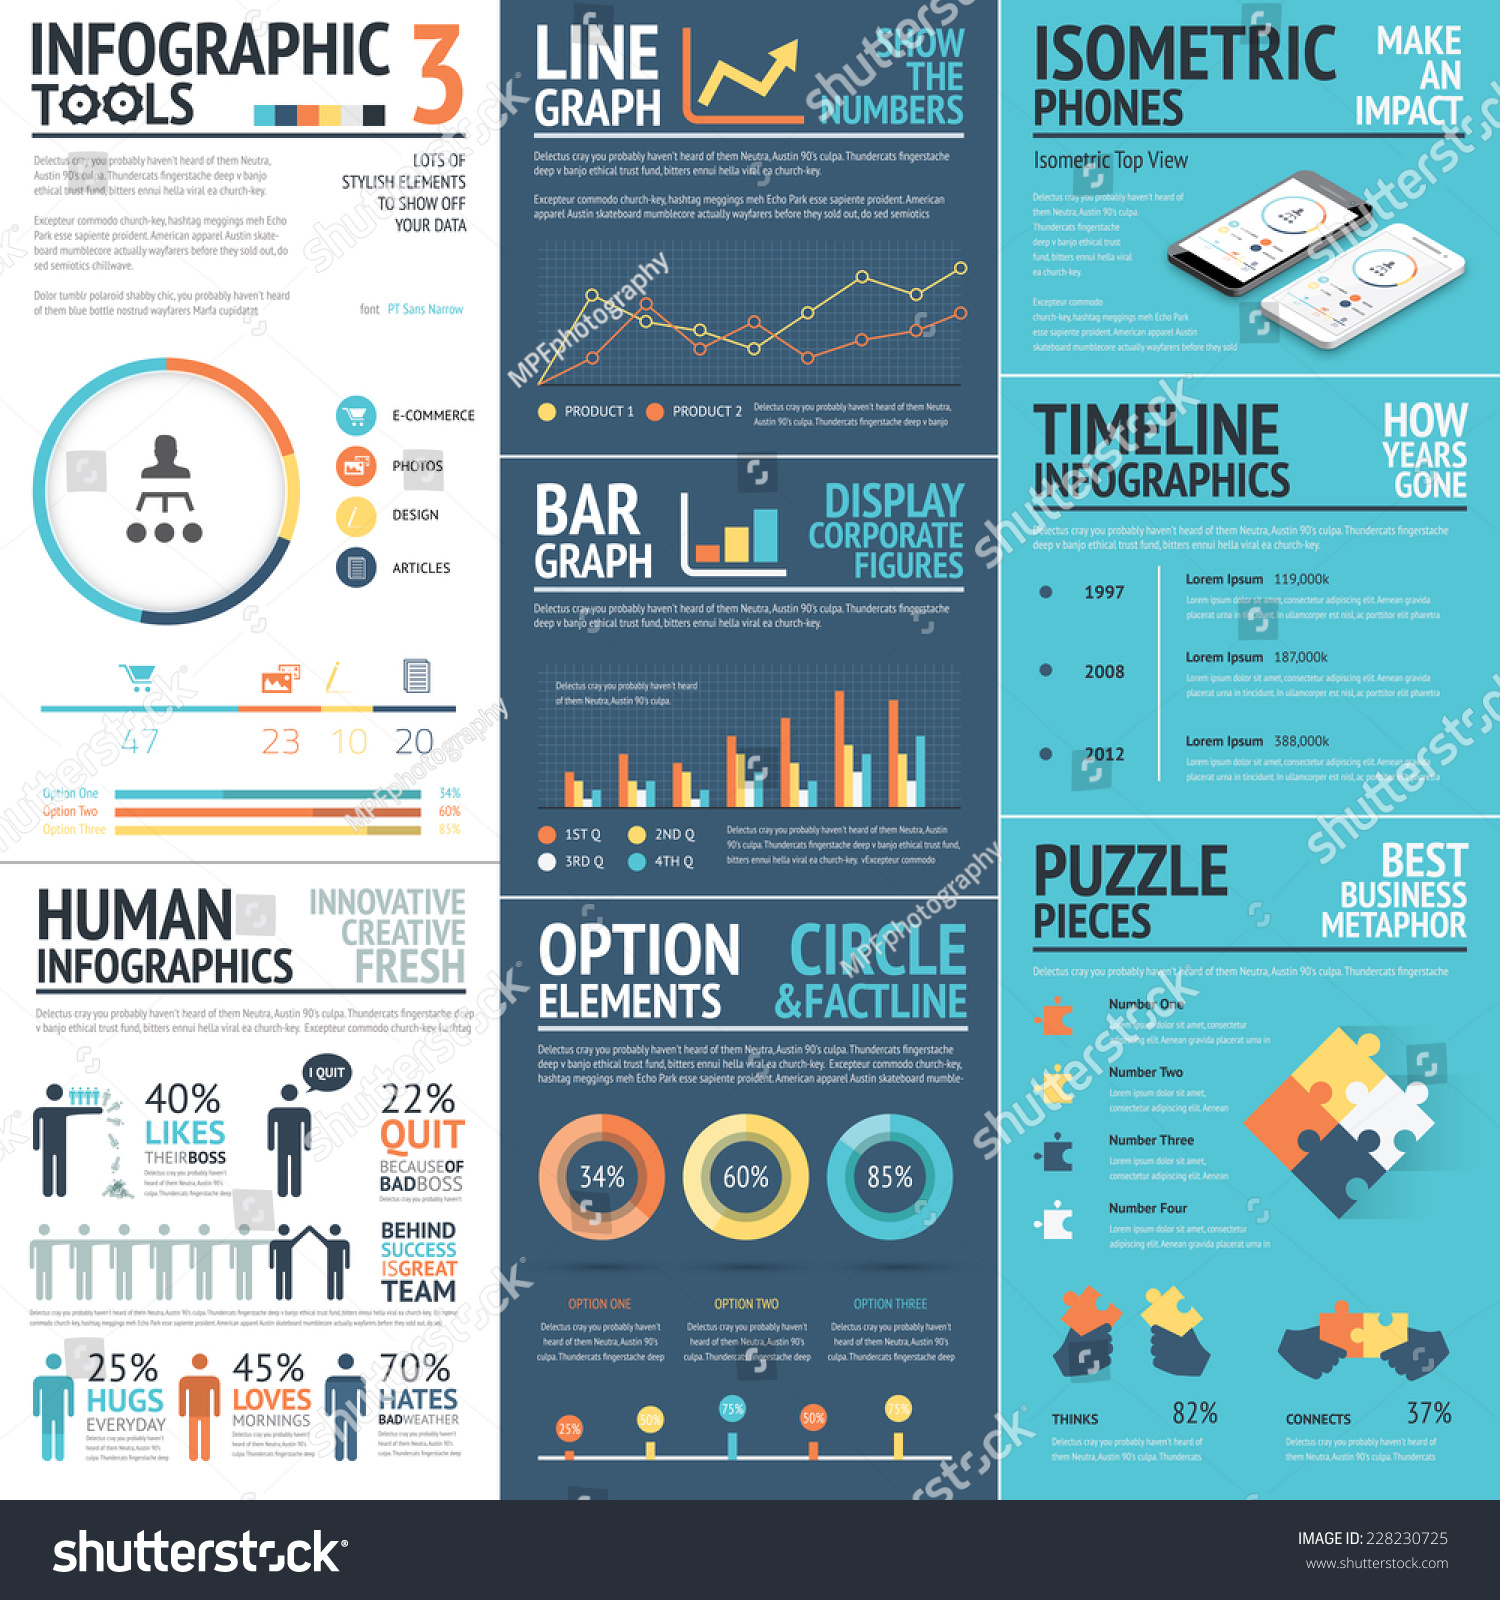 Best Infographic Sharing Site